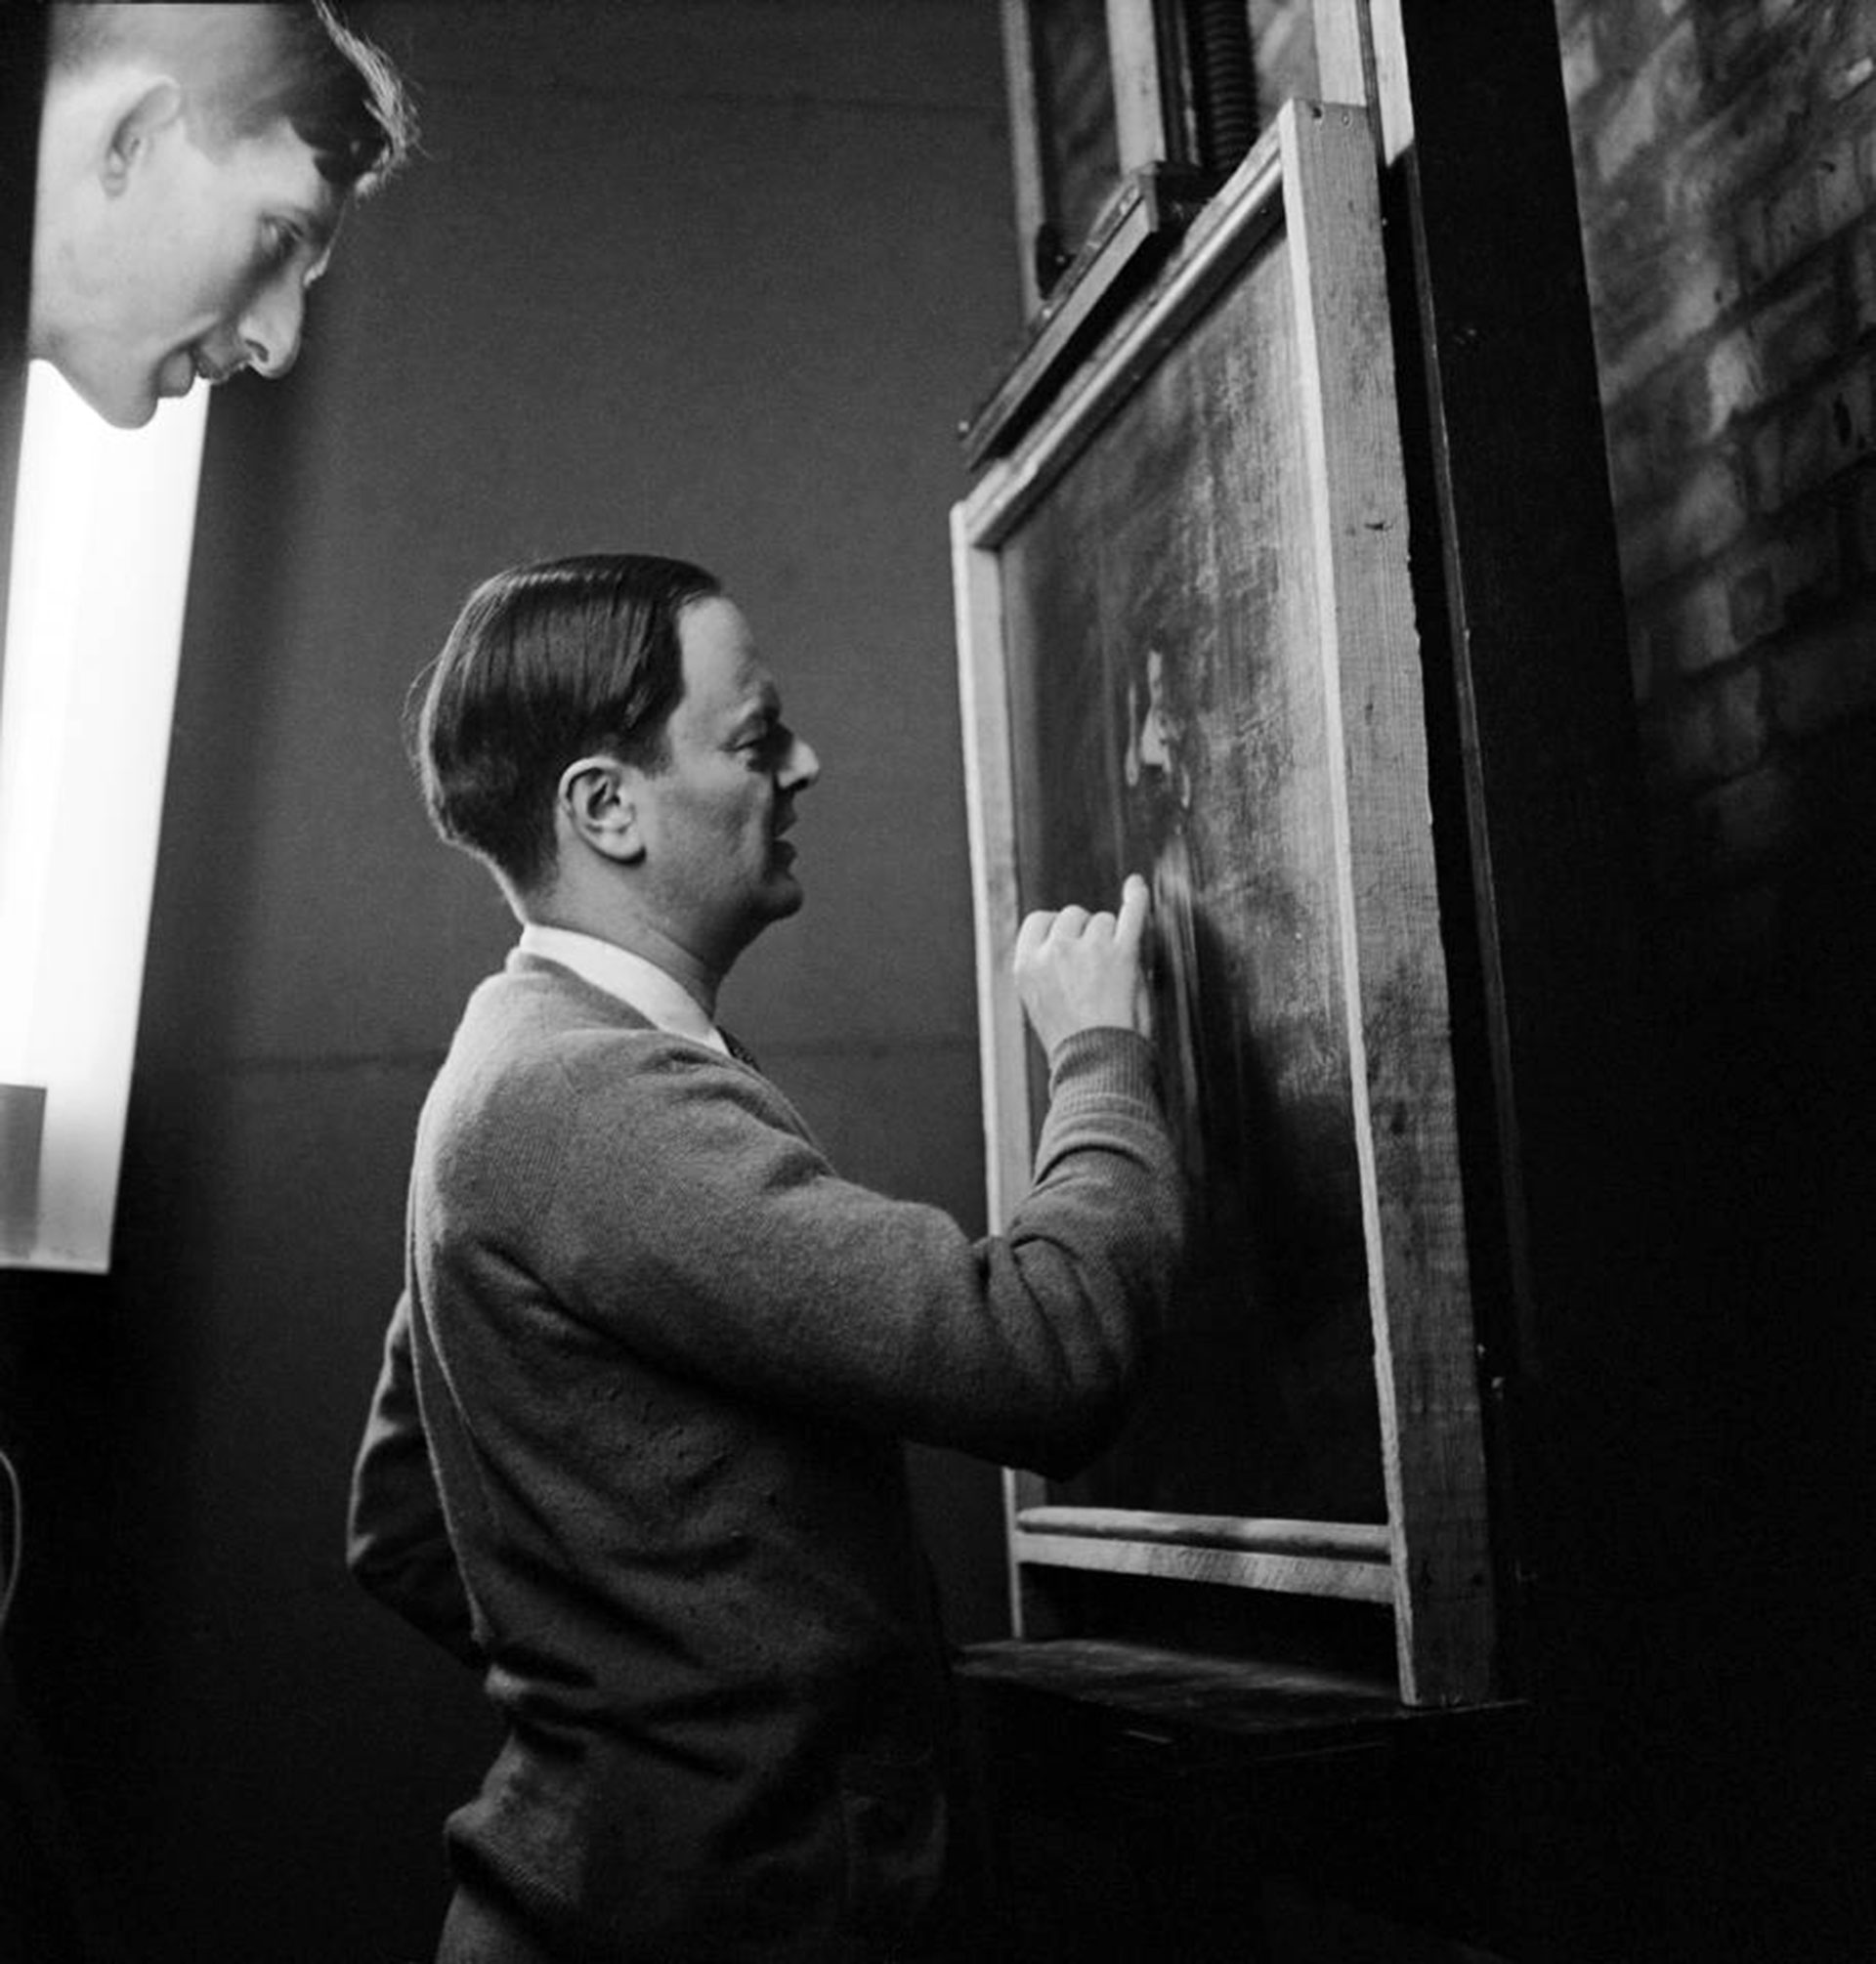 Sir Kenneth Clark, director de la National Gallery, inspecciona una obra